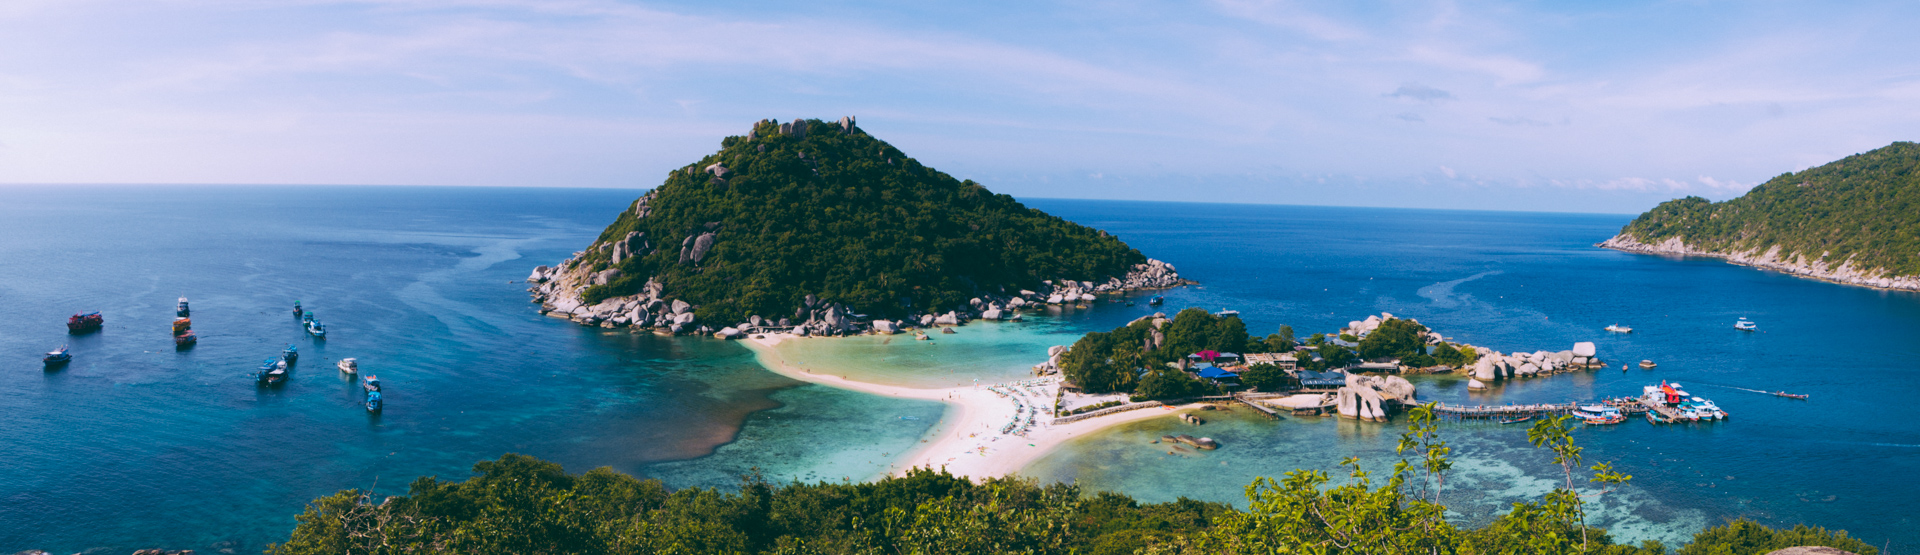 Koh Nang Yuan islands and beach in Koh Tao